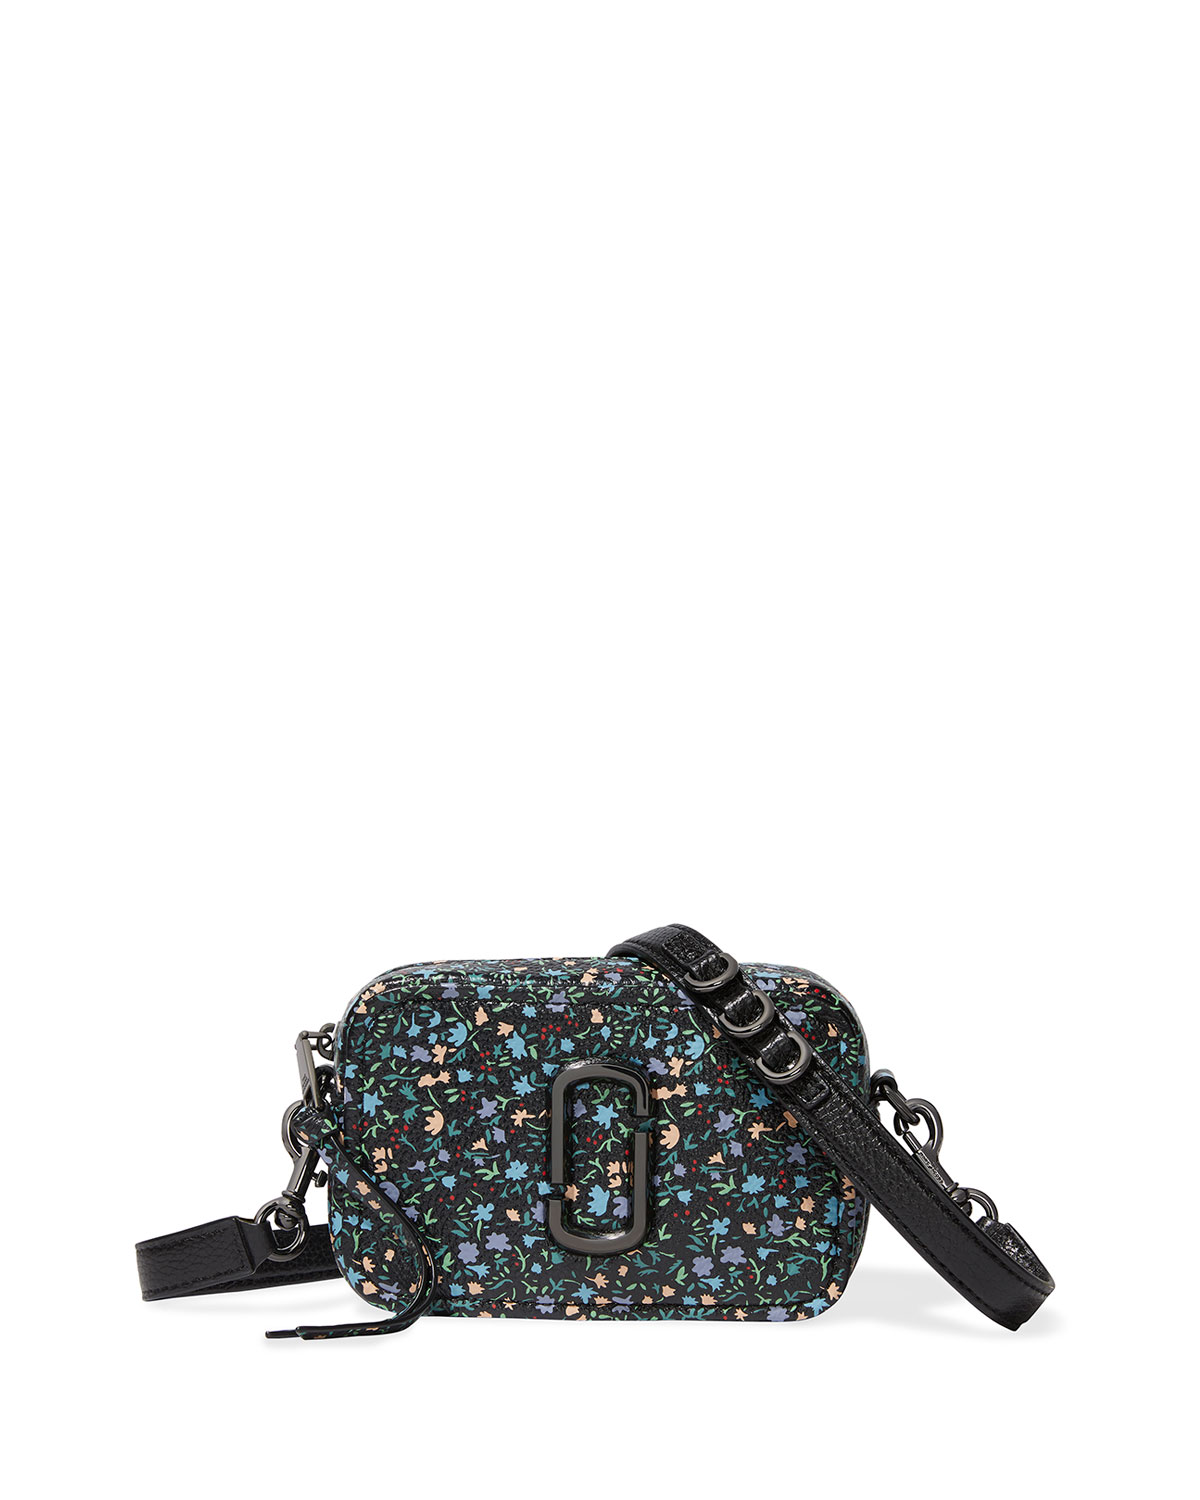 The Marc Jacobs THE SNAPSHOT 17 FLORAL-PRINT LEATHER CROSSBODY BAG